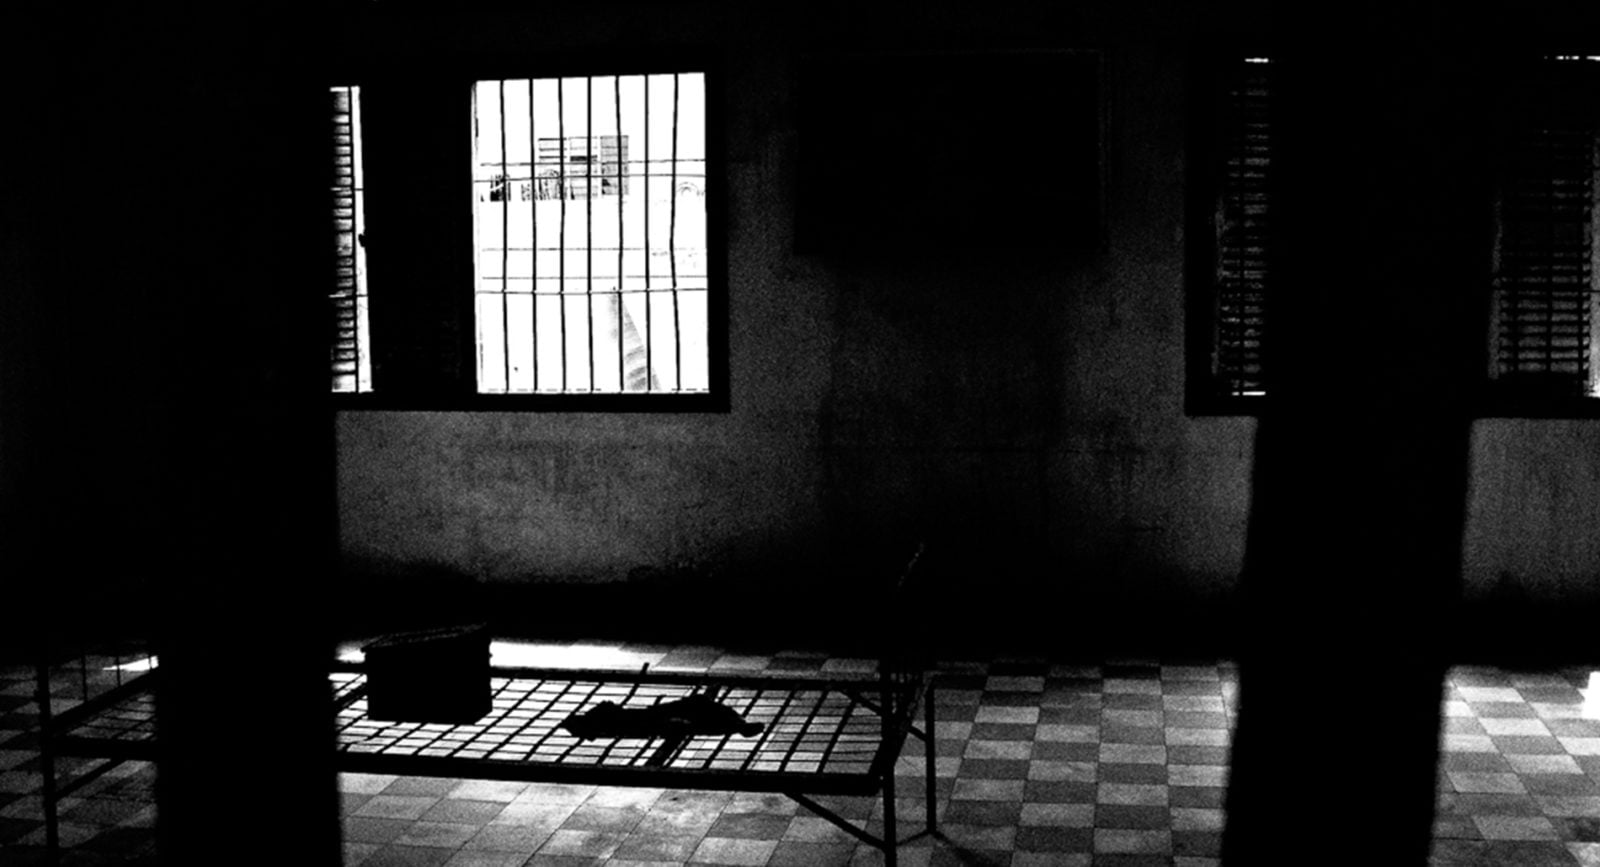 A torture prison on the outskirts of Phnom Penh, Cambodia.